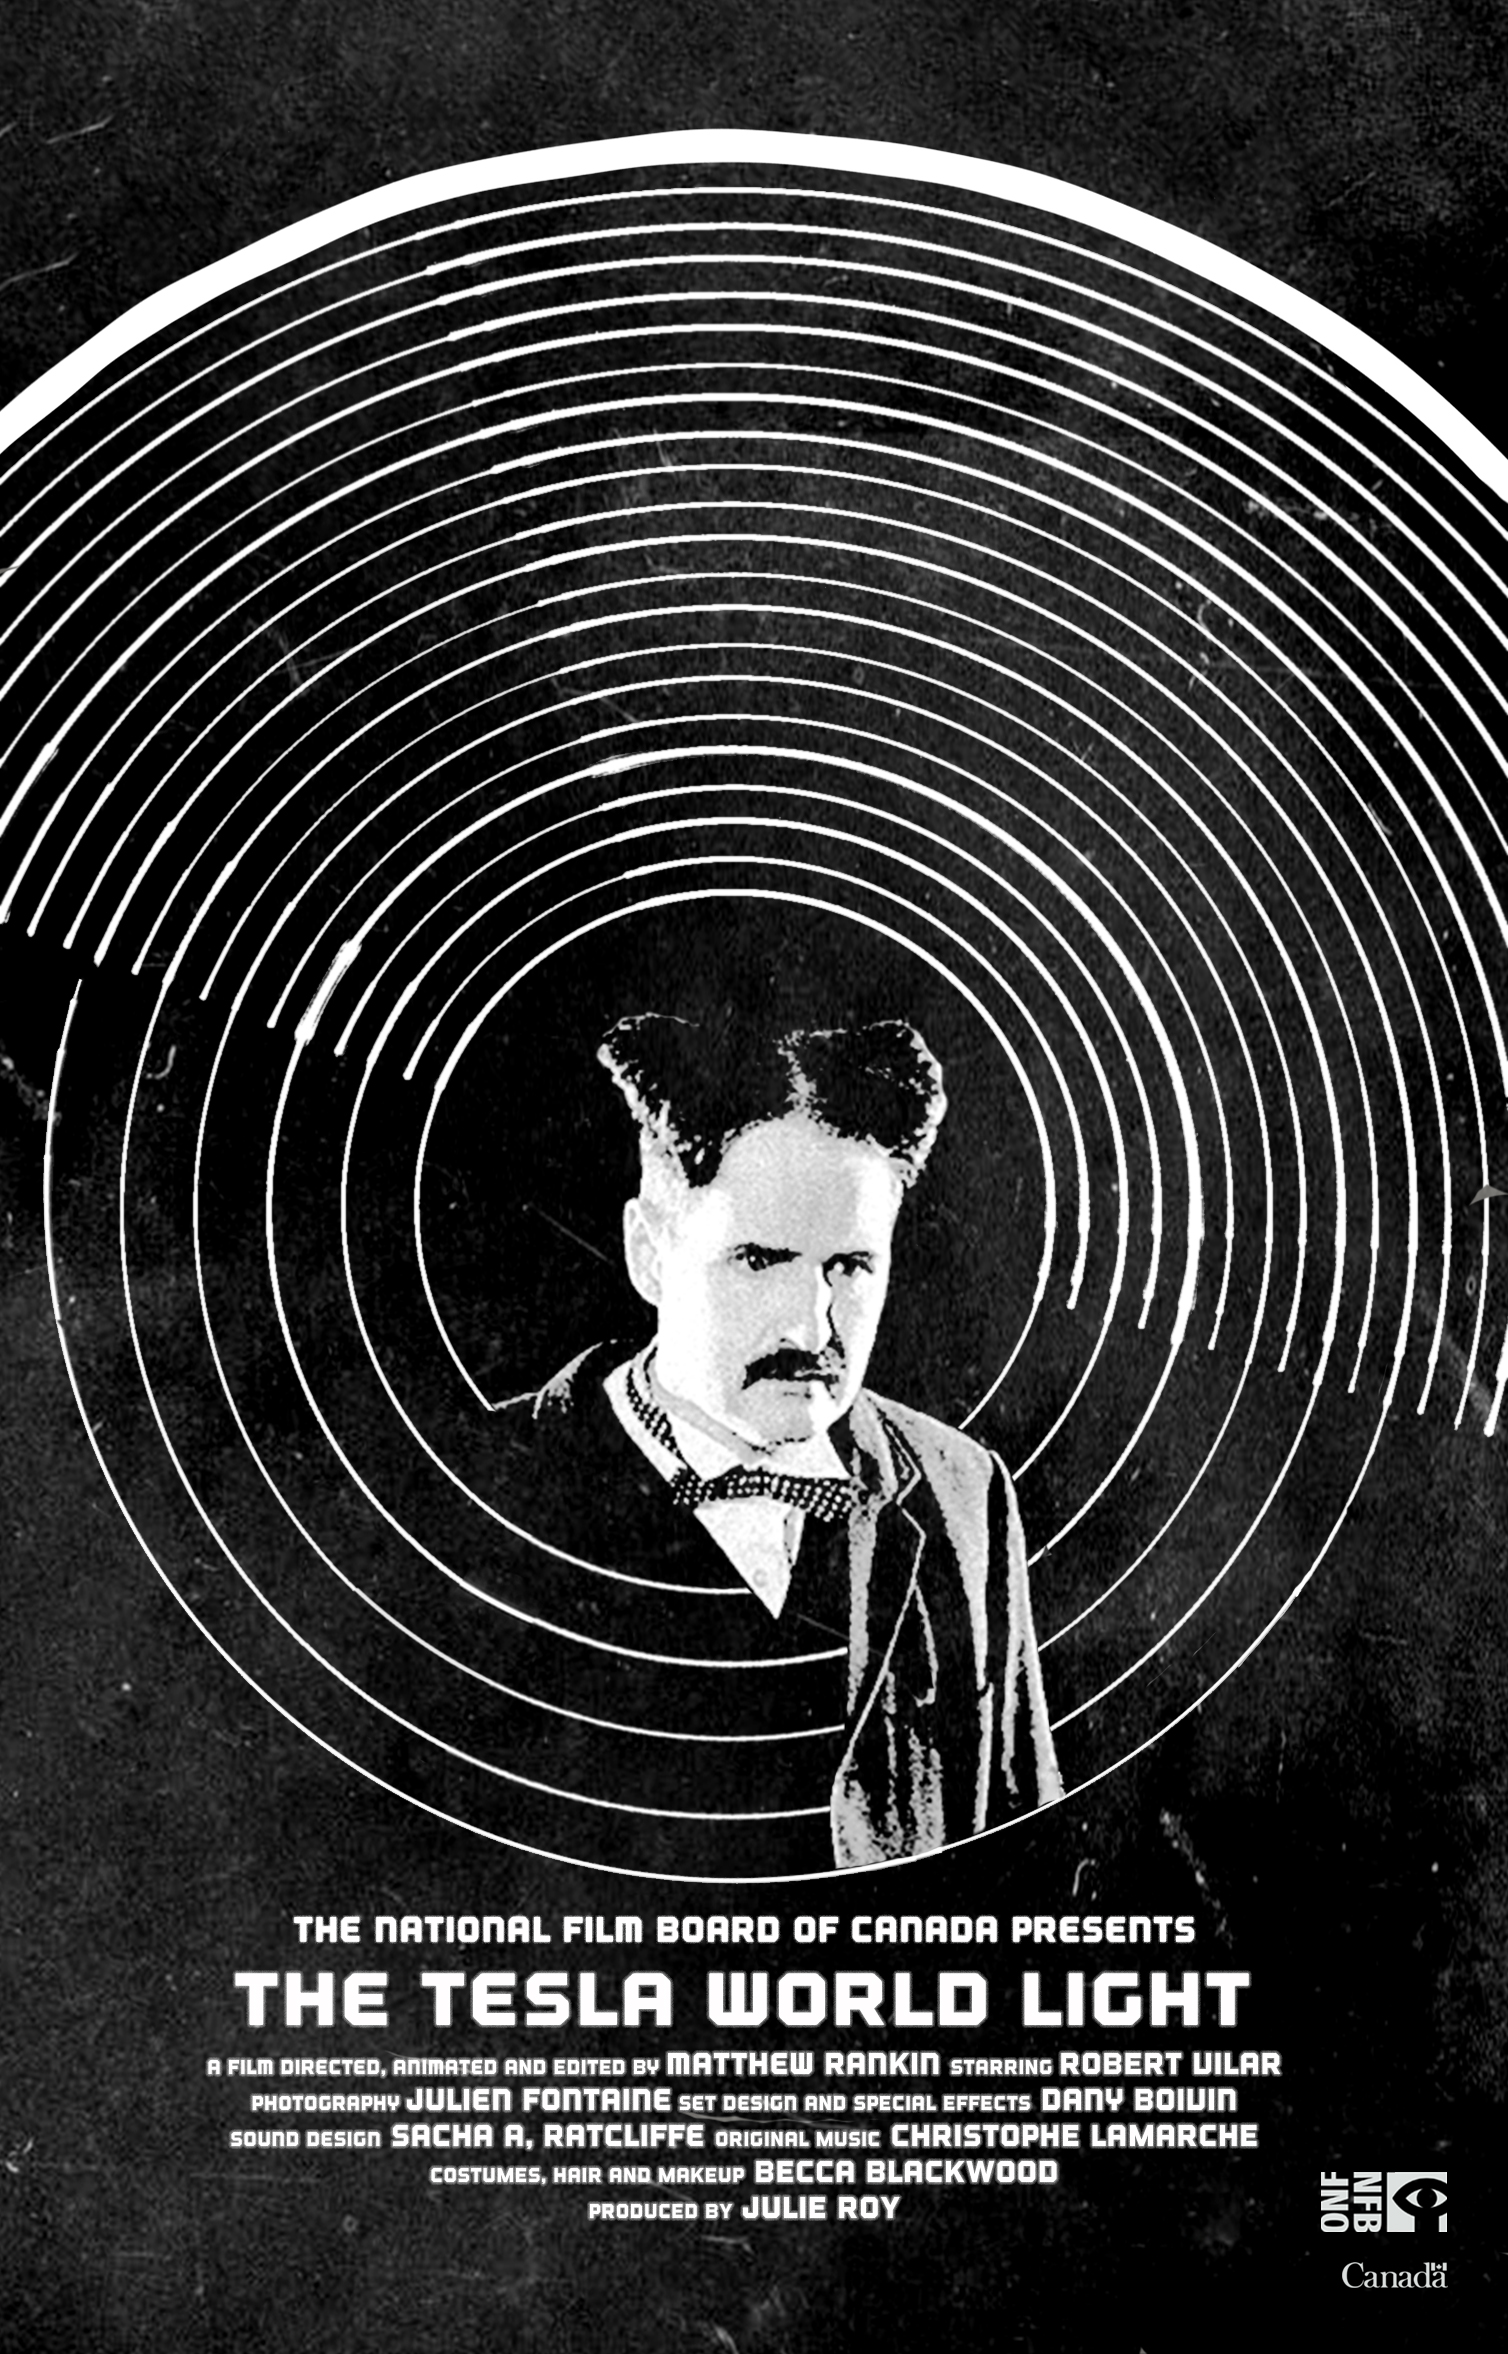 """TESLA: WORLD LIGHT - 2017   8m   Experimental Animated ShortNew York, 1905. Visionary inventor Nikola Tesla makes one last appeal to J.P. Morgan, his onetime benefactor. The Tesla World Light is a tragic fantasy about the father of alternating current, inspired by real events such as the inventor's run of bad luck as a businessman and his affection for a pet bird, which he loves """"like a man loves a woman."""" Tesla's words to the banker form the backdrop of this moving film about the man who blended science and art in his attempts to create the utopia of unlimited energy for all.Directed by Matthew Rankin.Produced by Julie Roy, The National Film Board of Canada."""